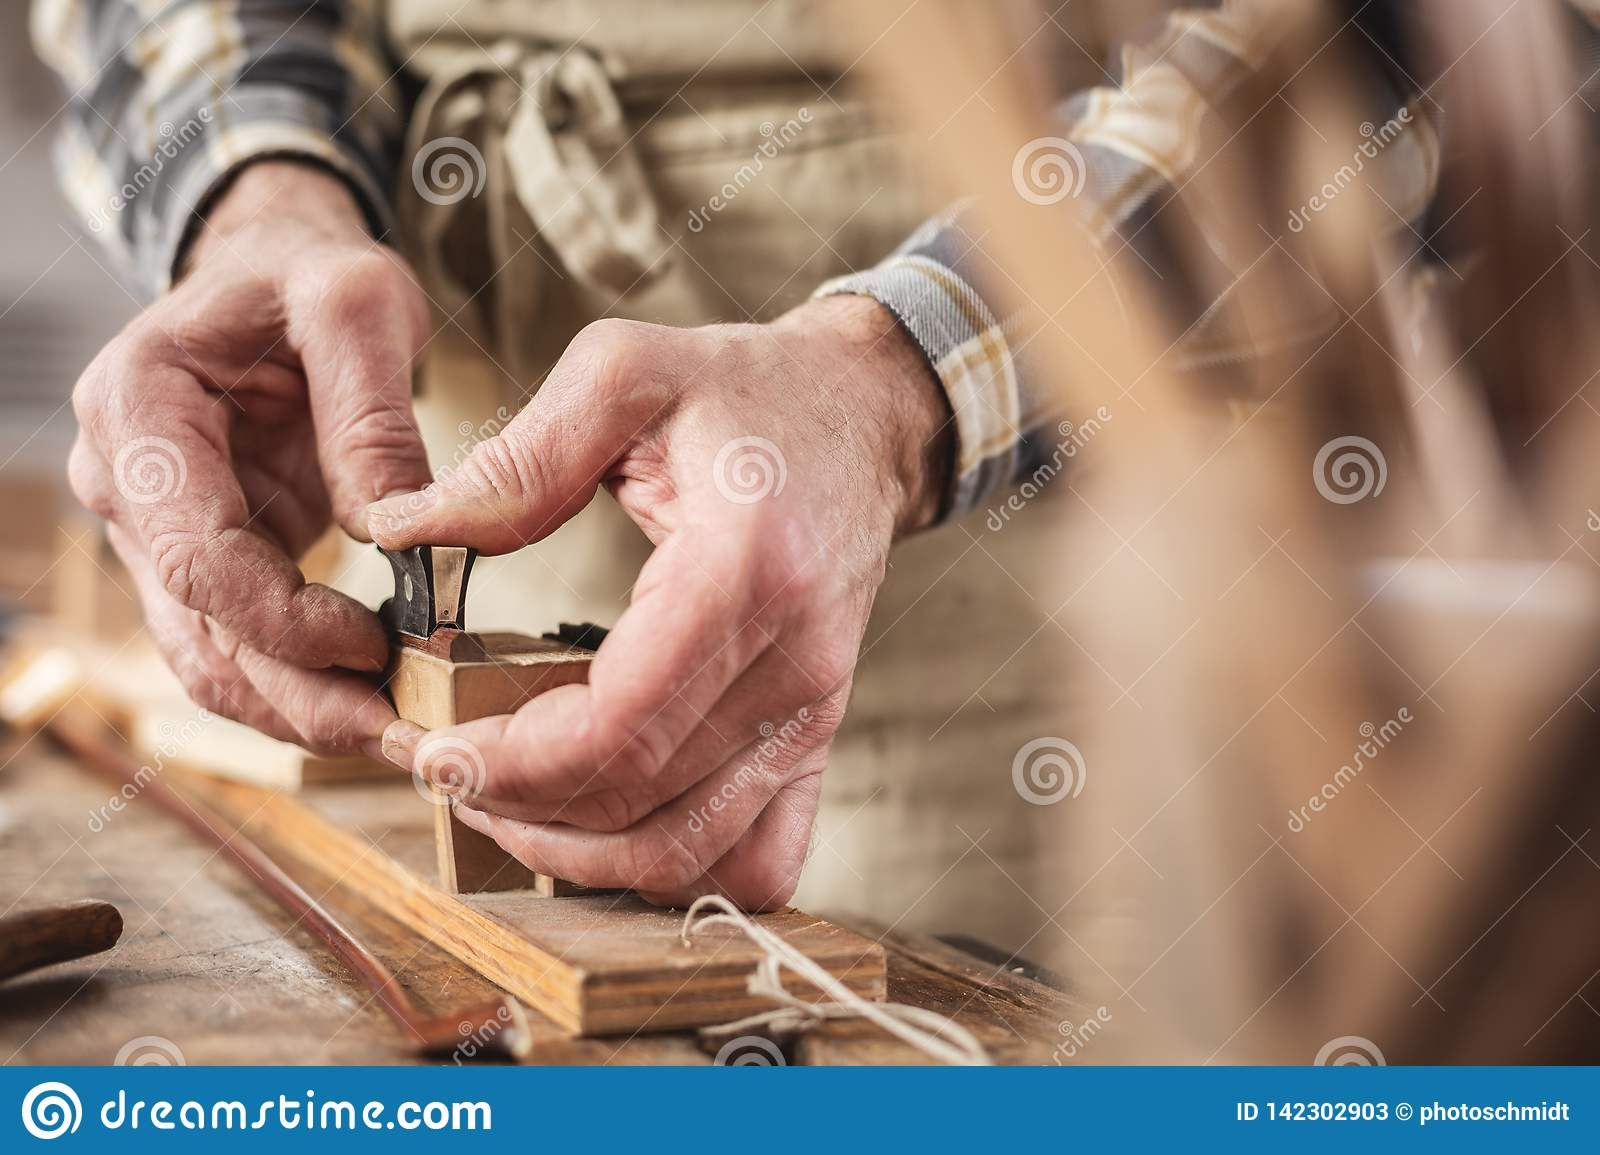 Hands of an instrument maker working on a violin bow